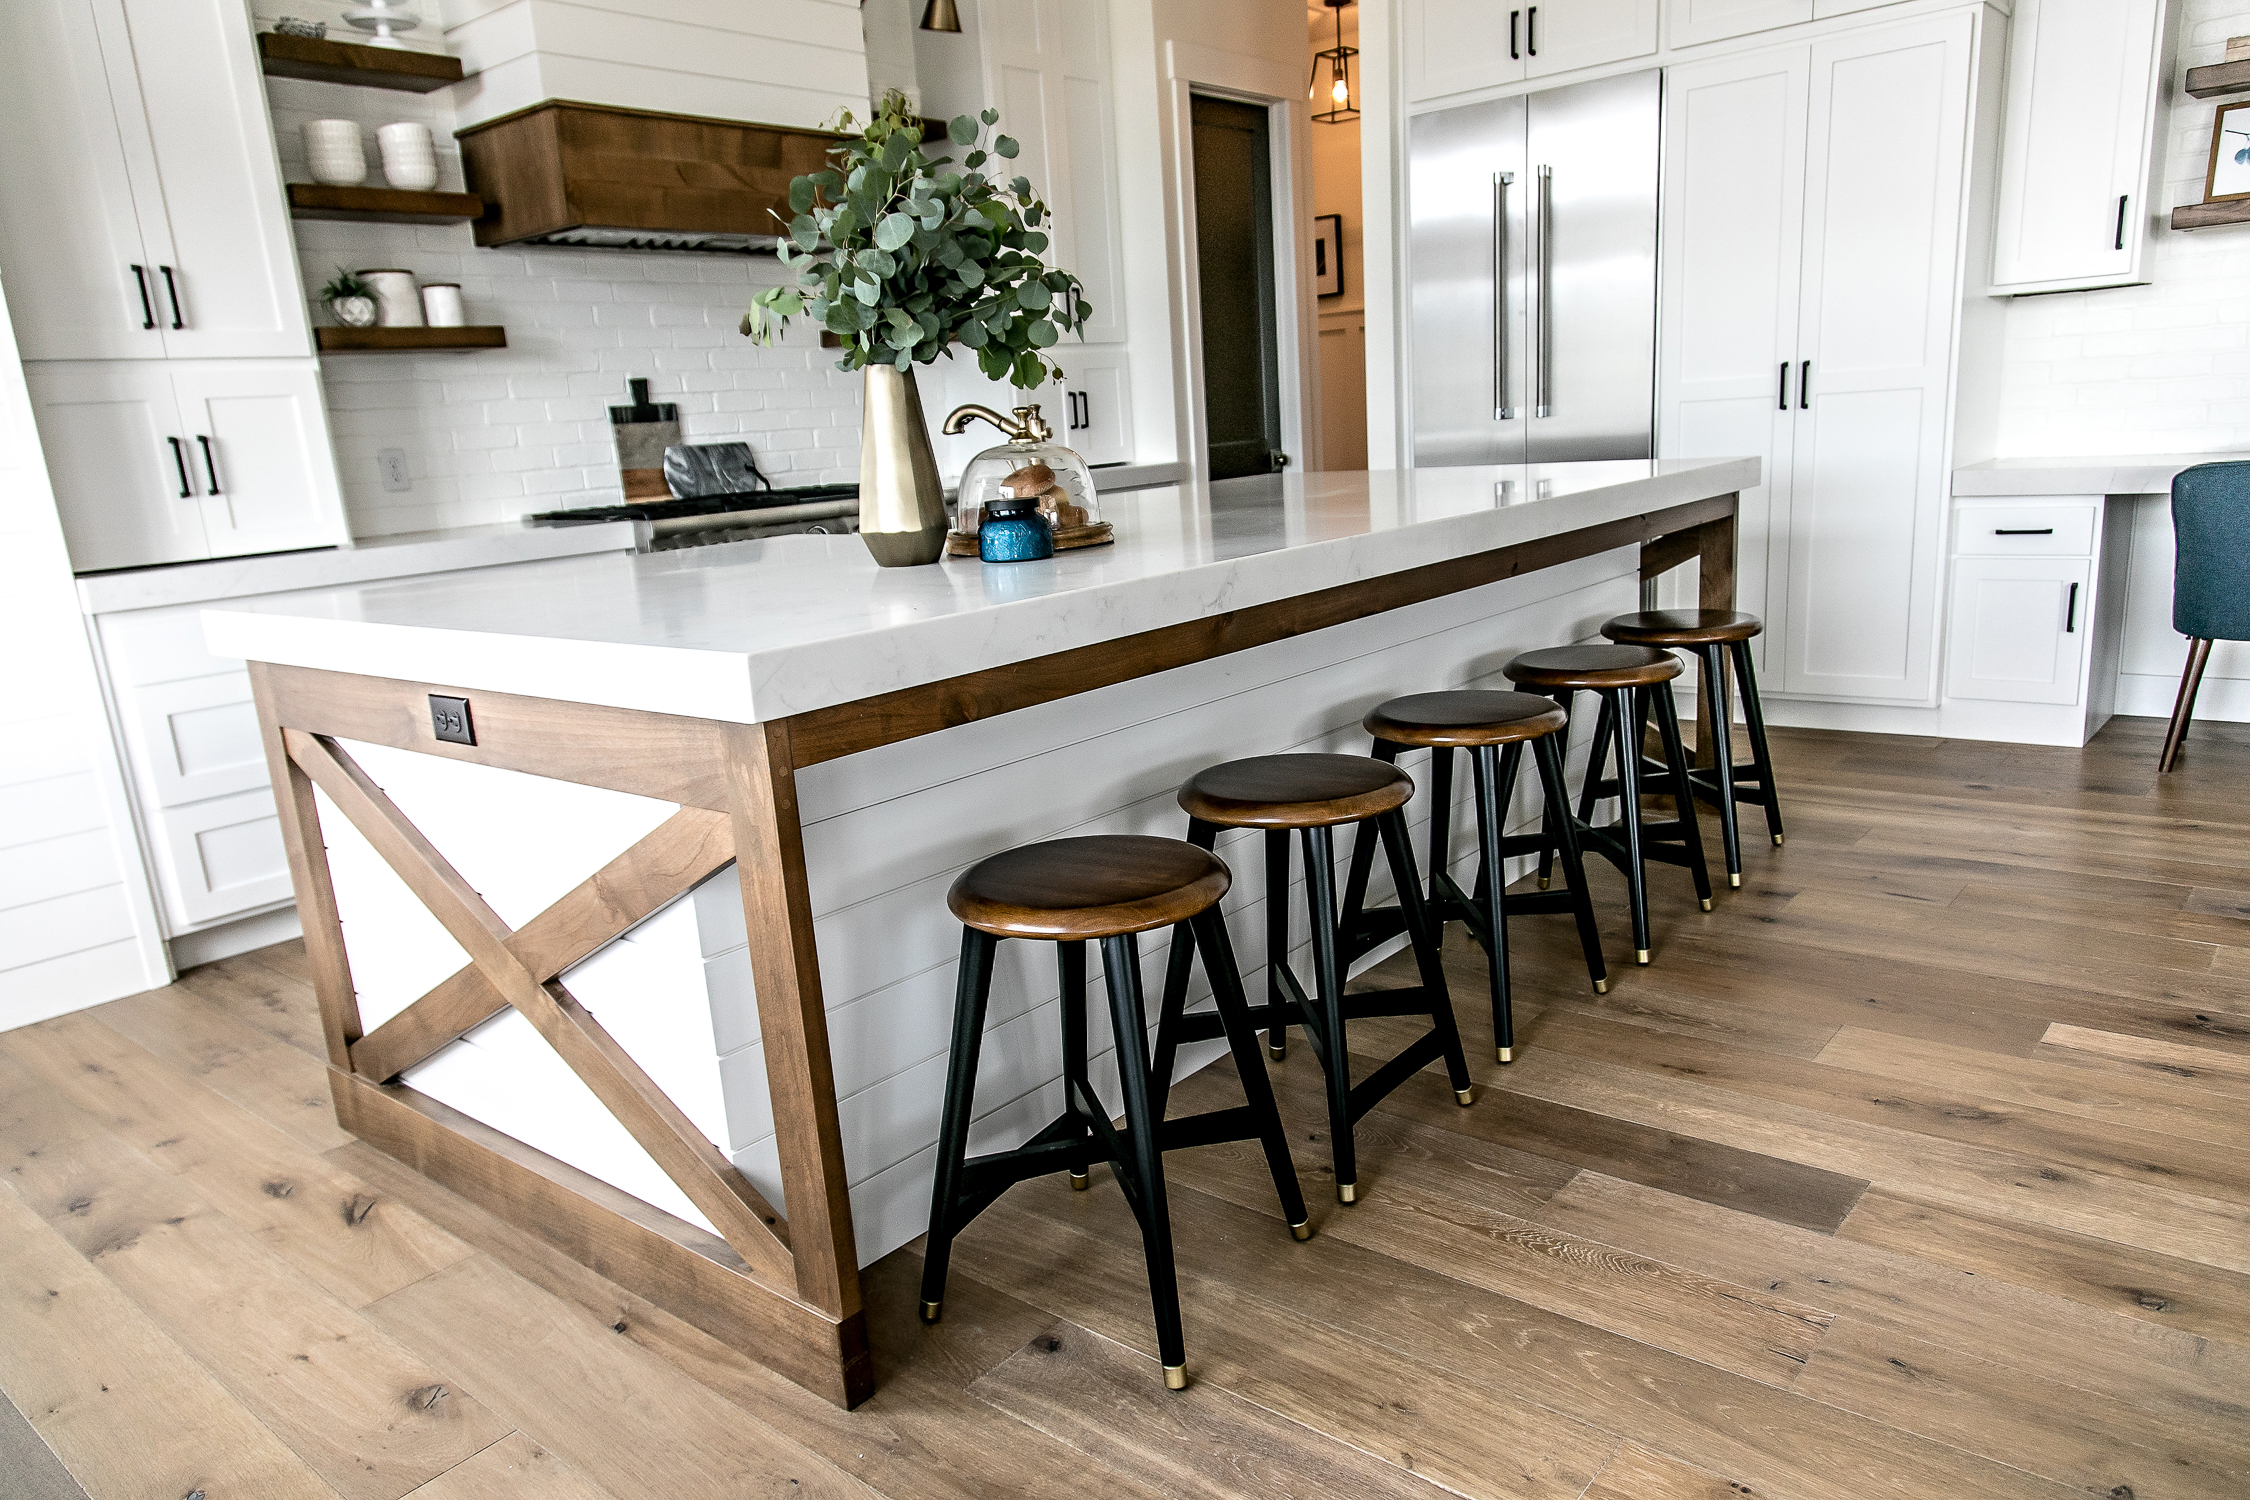 It Was Important To Me To Add Some Stained Wood Into The Design Of The  Kitchen To Add Warmth. One Way I Did This Was To Accent The Island With  Stained U201cXu201d ...